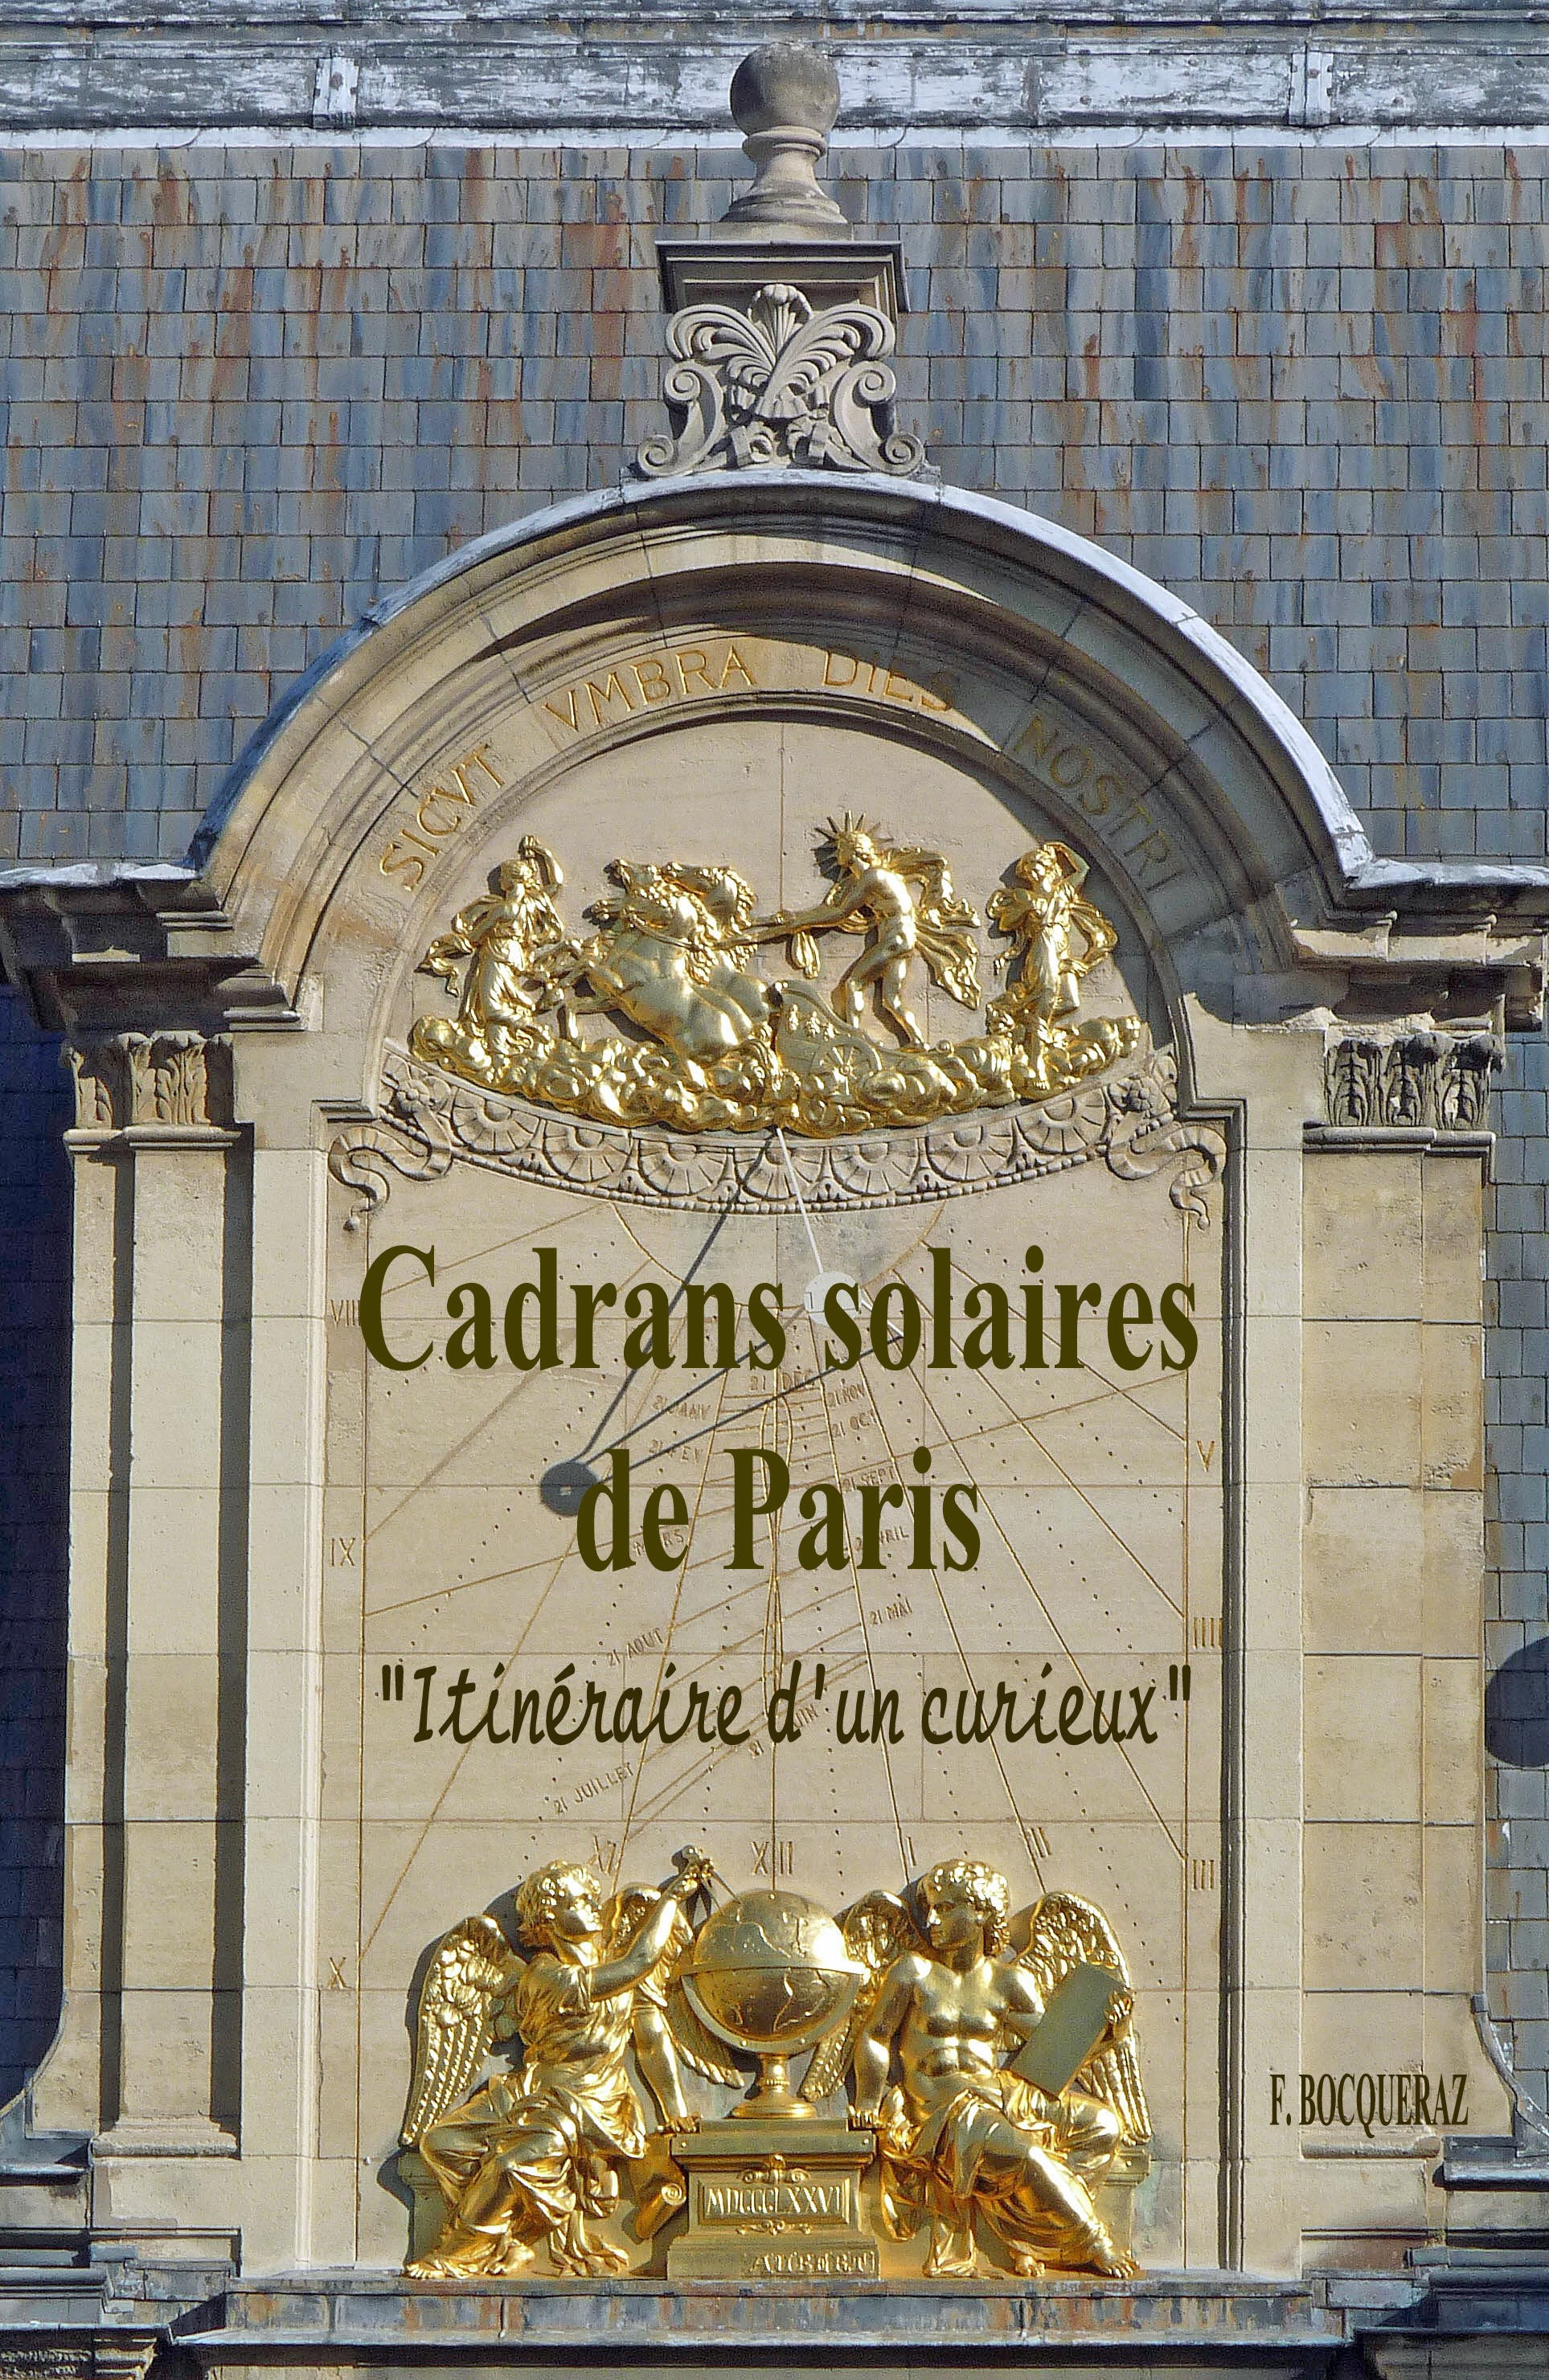 Volume 1 – Cadrans solaires de Paris – ISBN 978-2-9547016-0-8